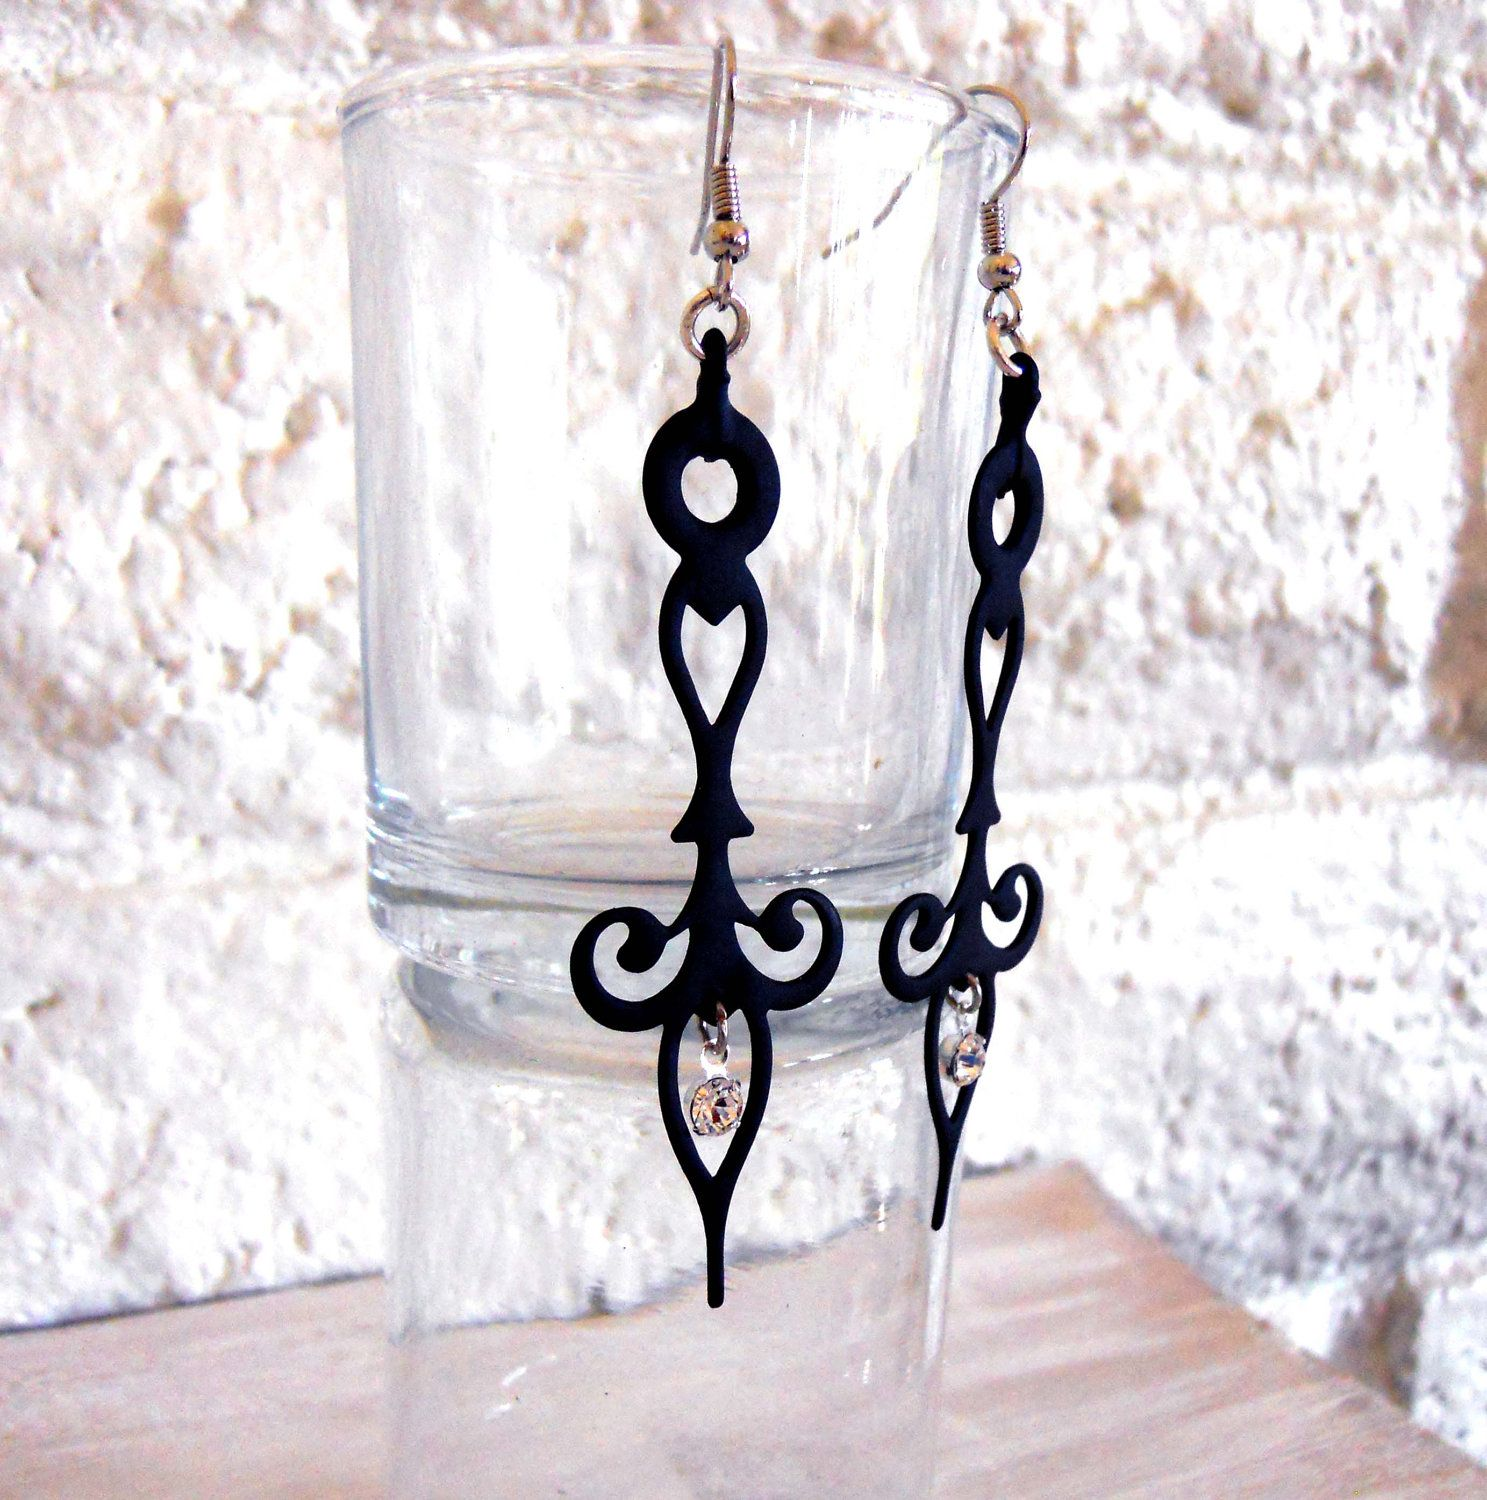 Gothic Steampunk Earrings Clock Hands Black with Crystals- Noir Neo Victorian Styled. $26.00, via Etsy.